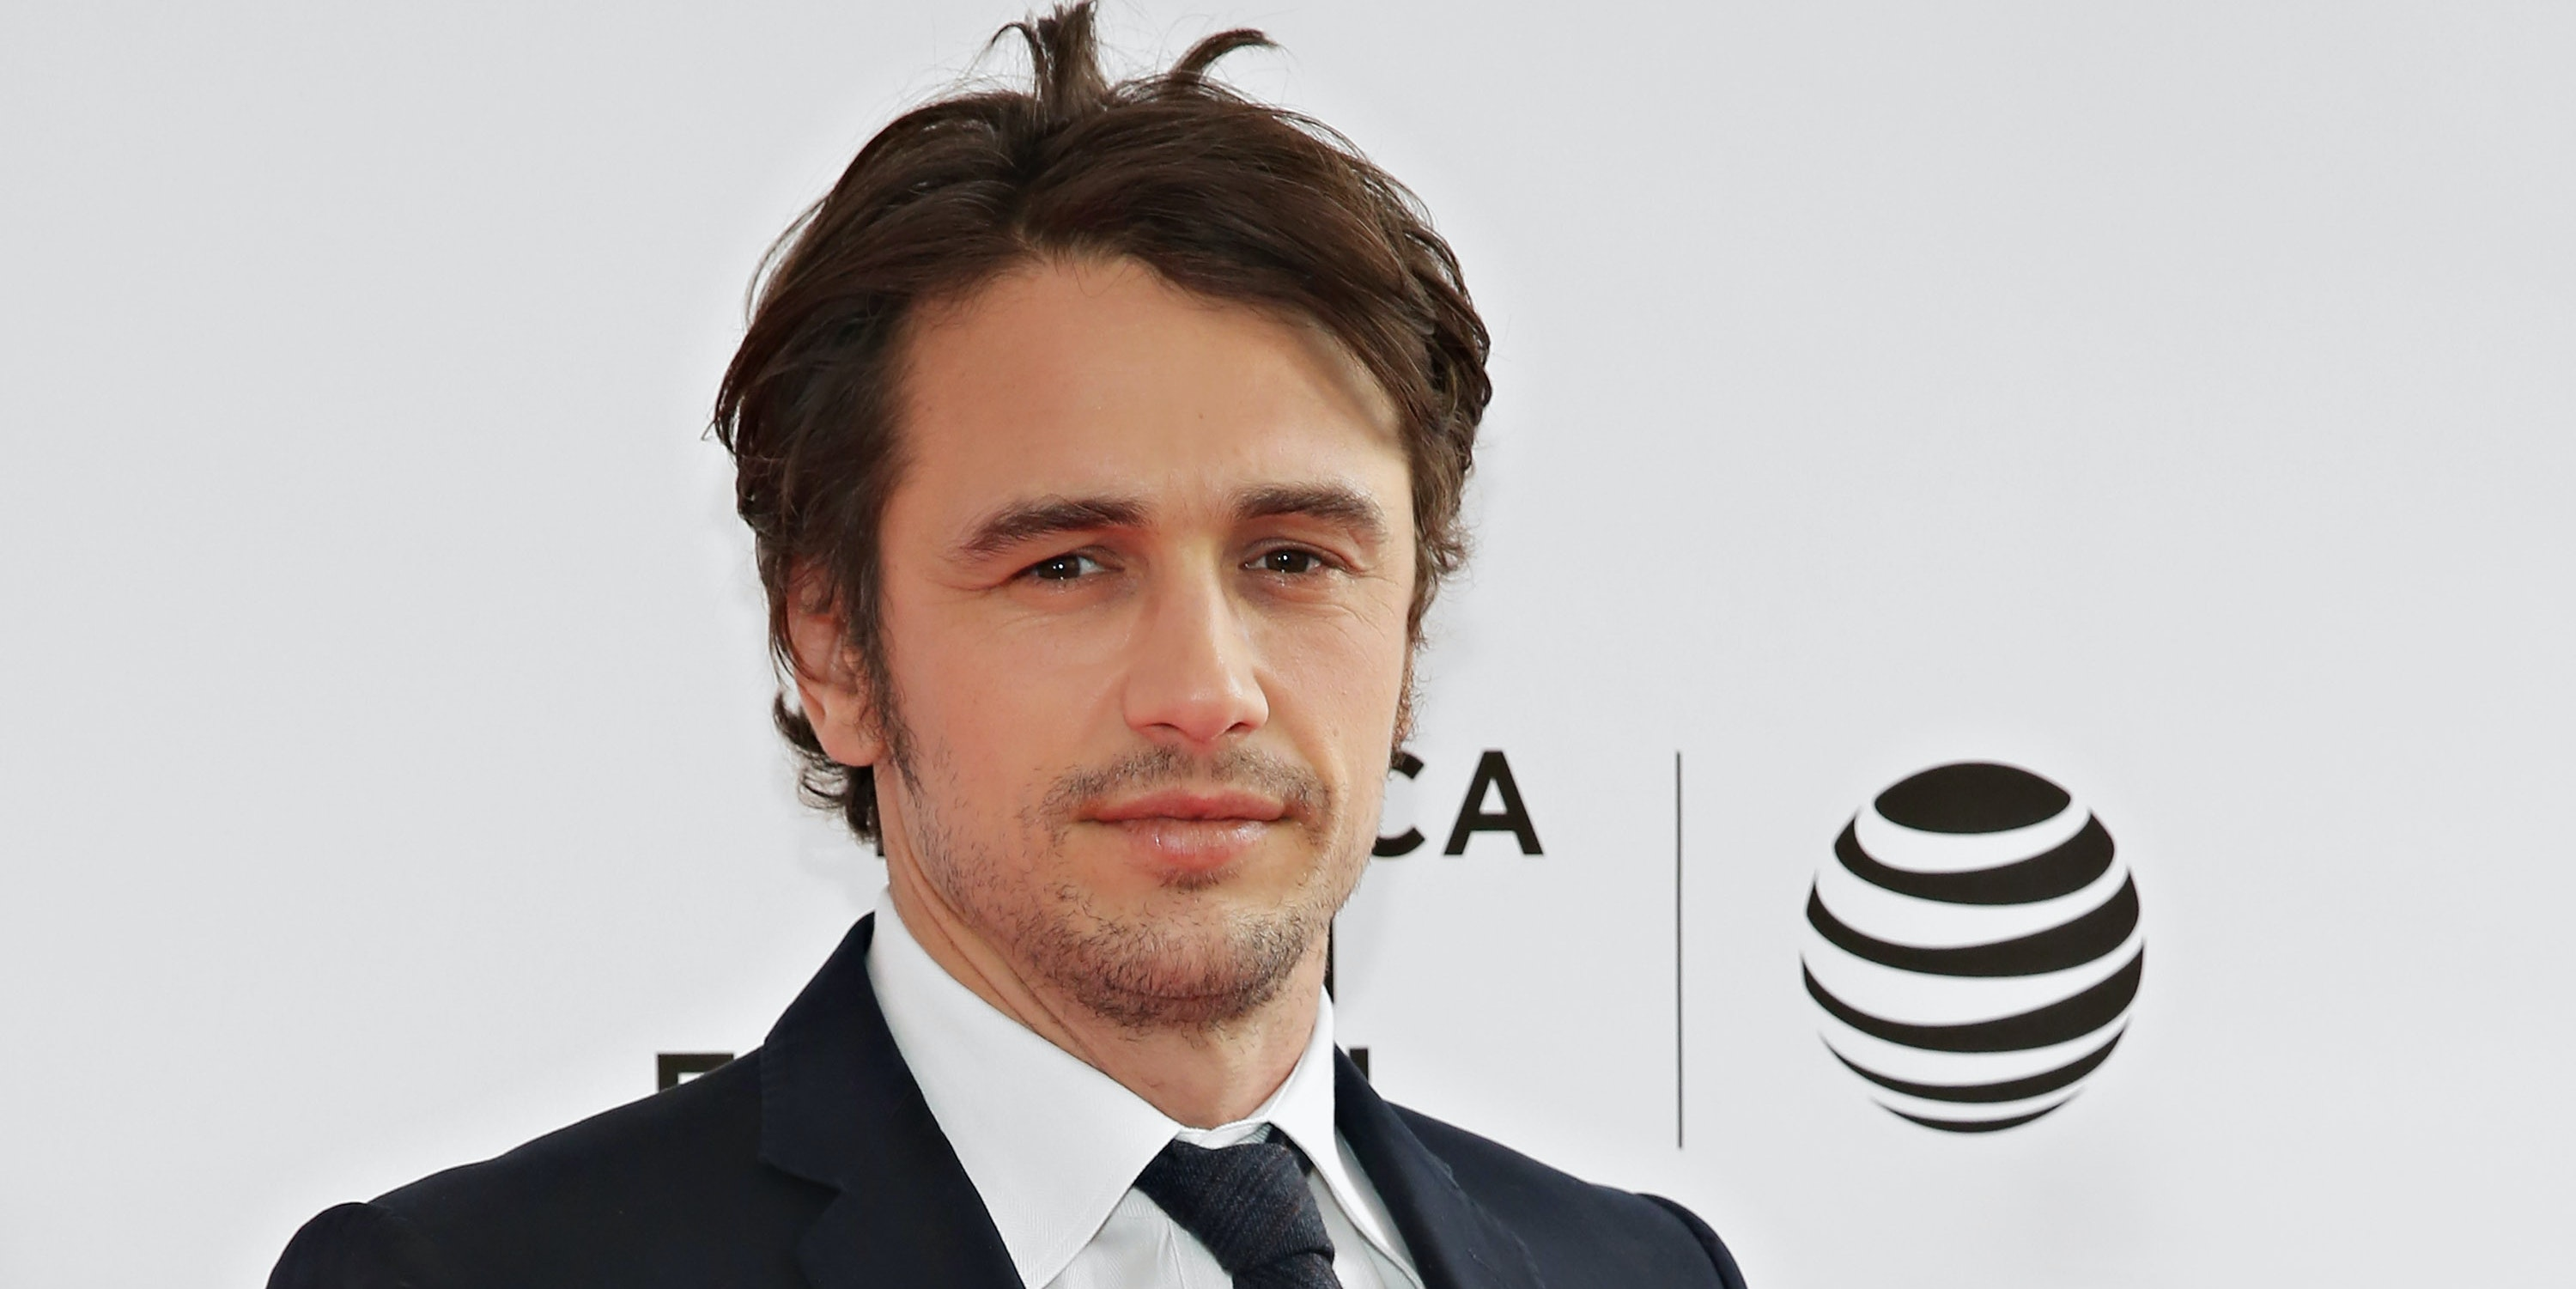 """Why James Franco Is """"a Little Gay"""": The Kinsey Scale Explained"""